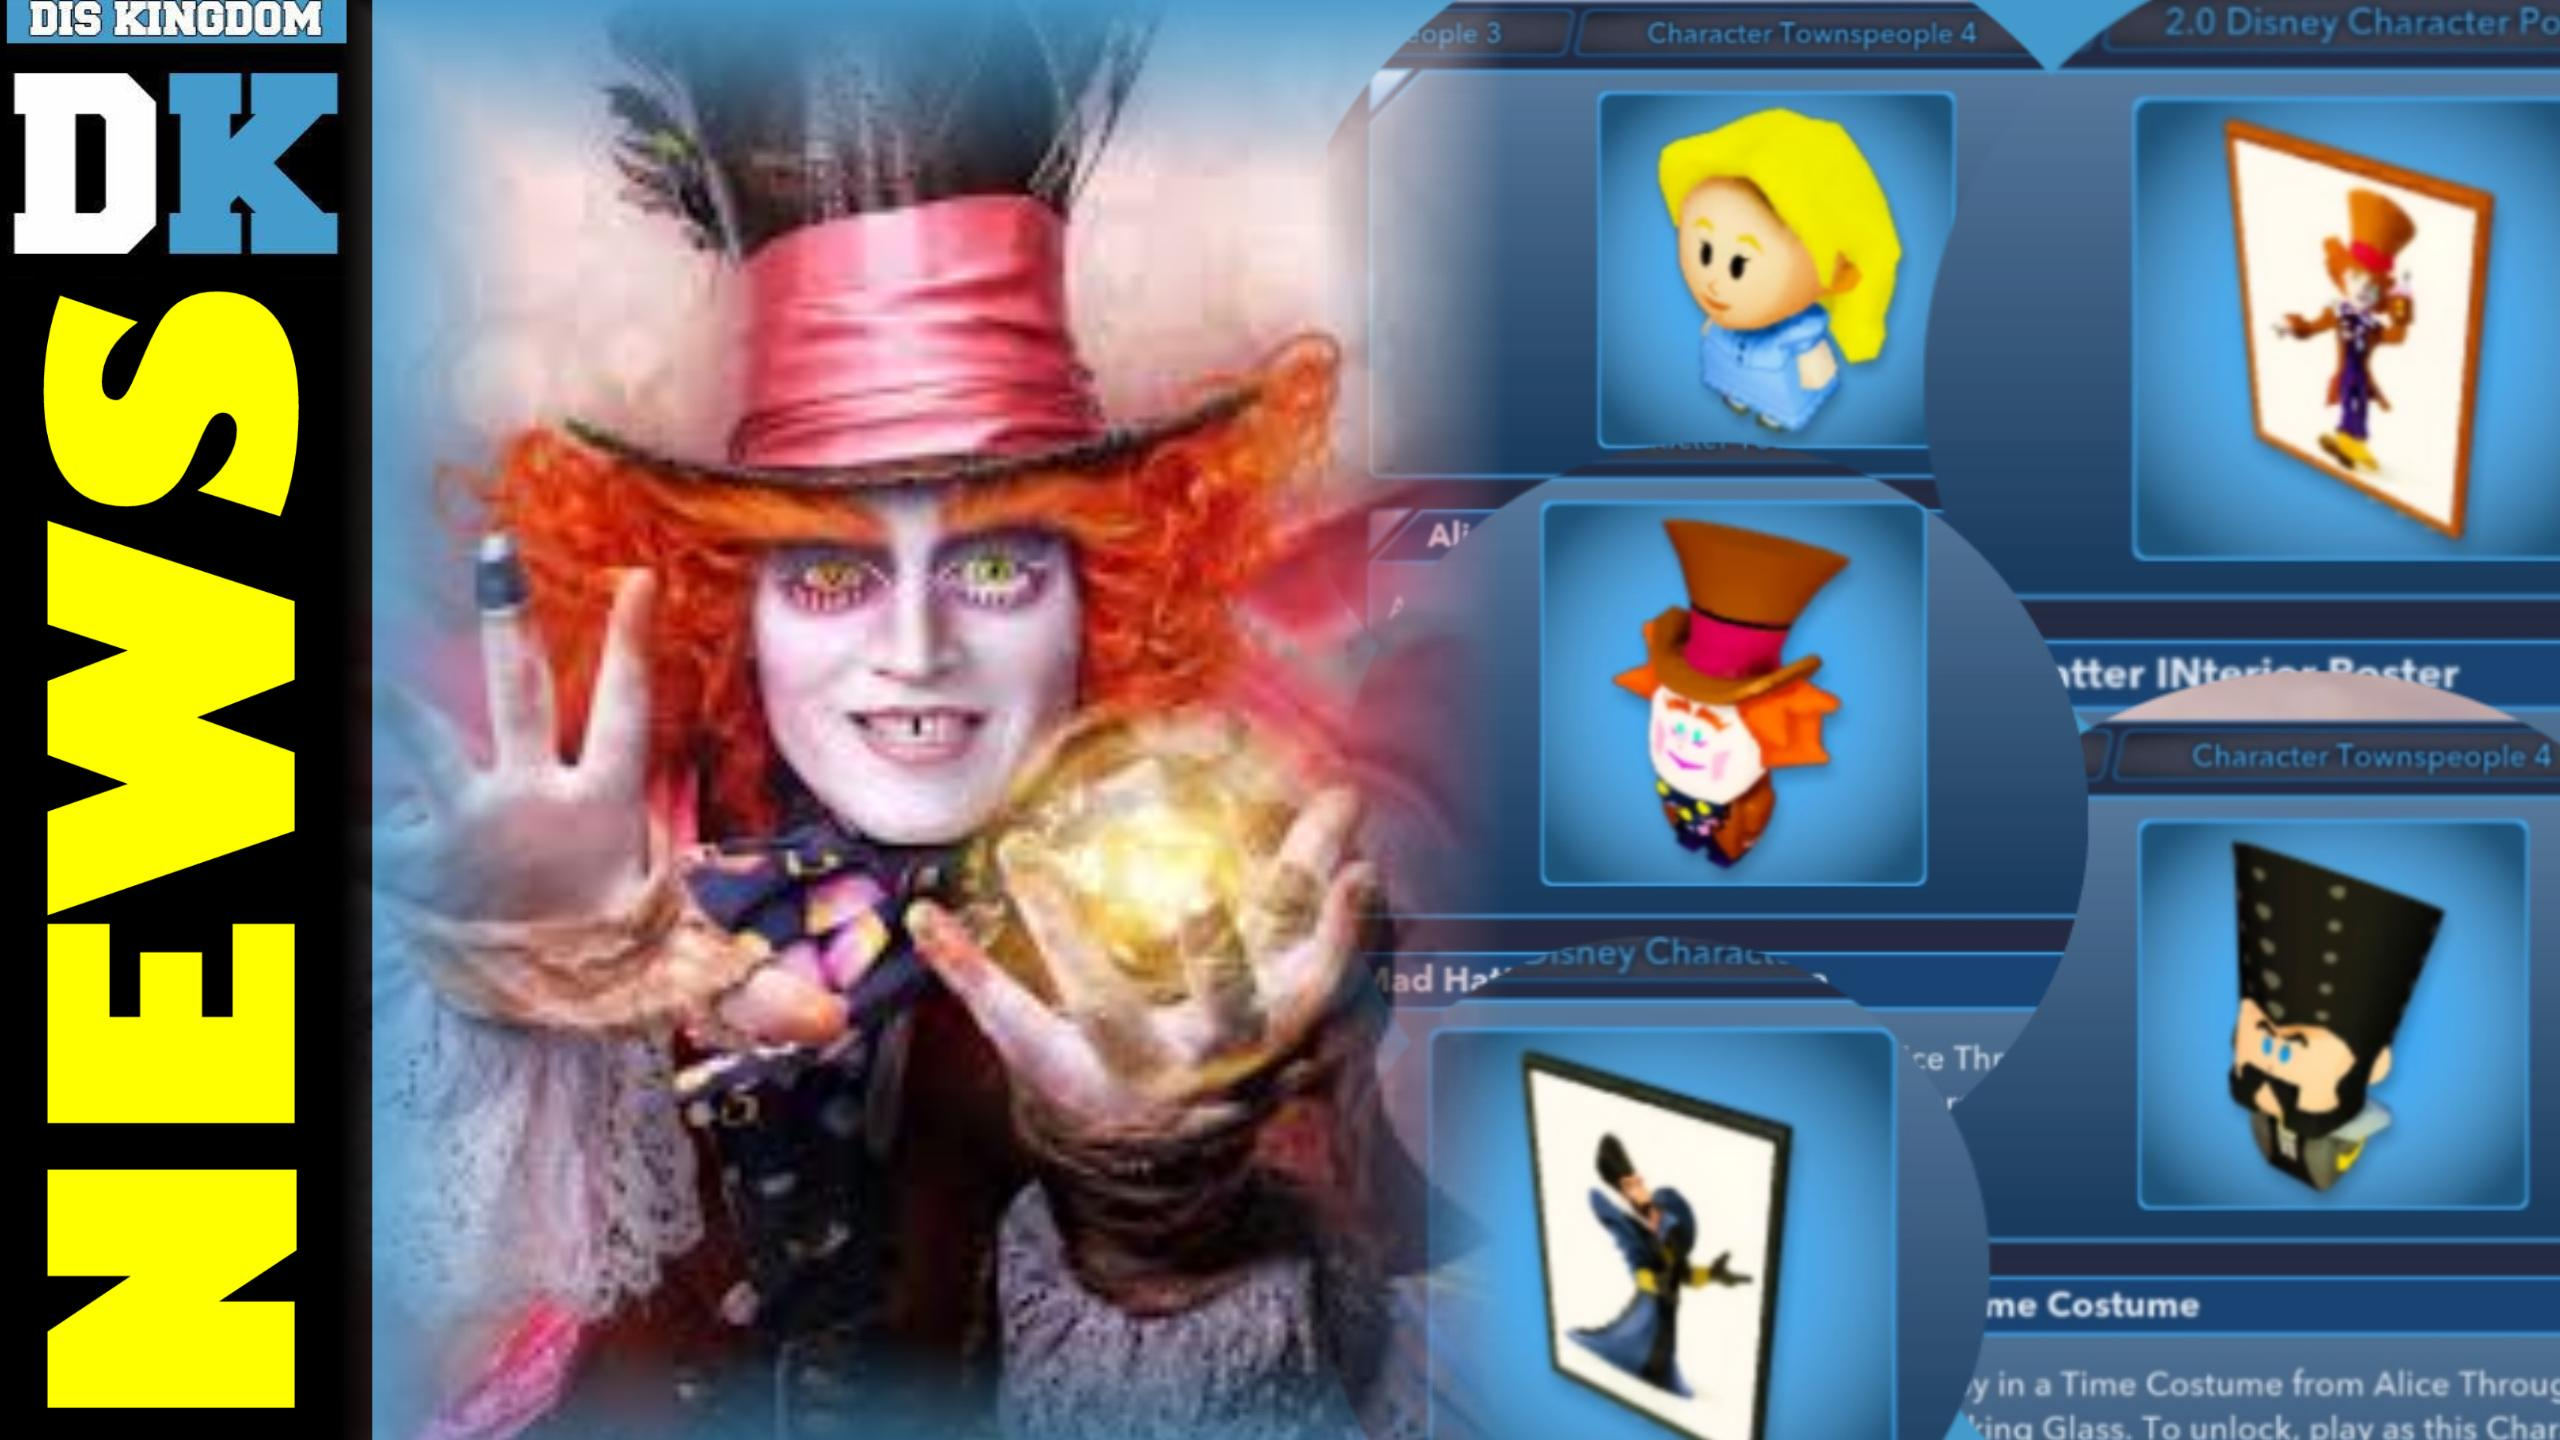 Alice Through The Looking Glass Added To Disney Infinity 3.0